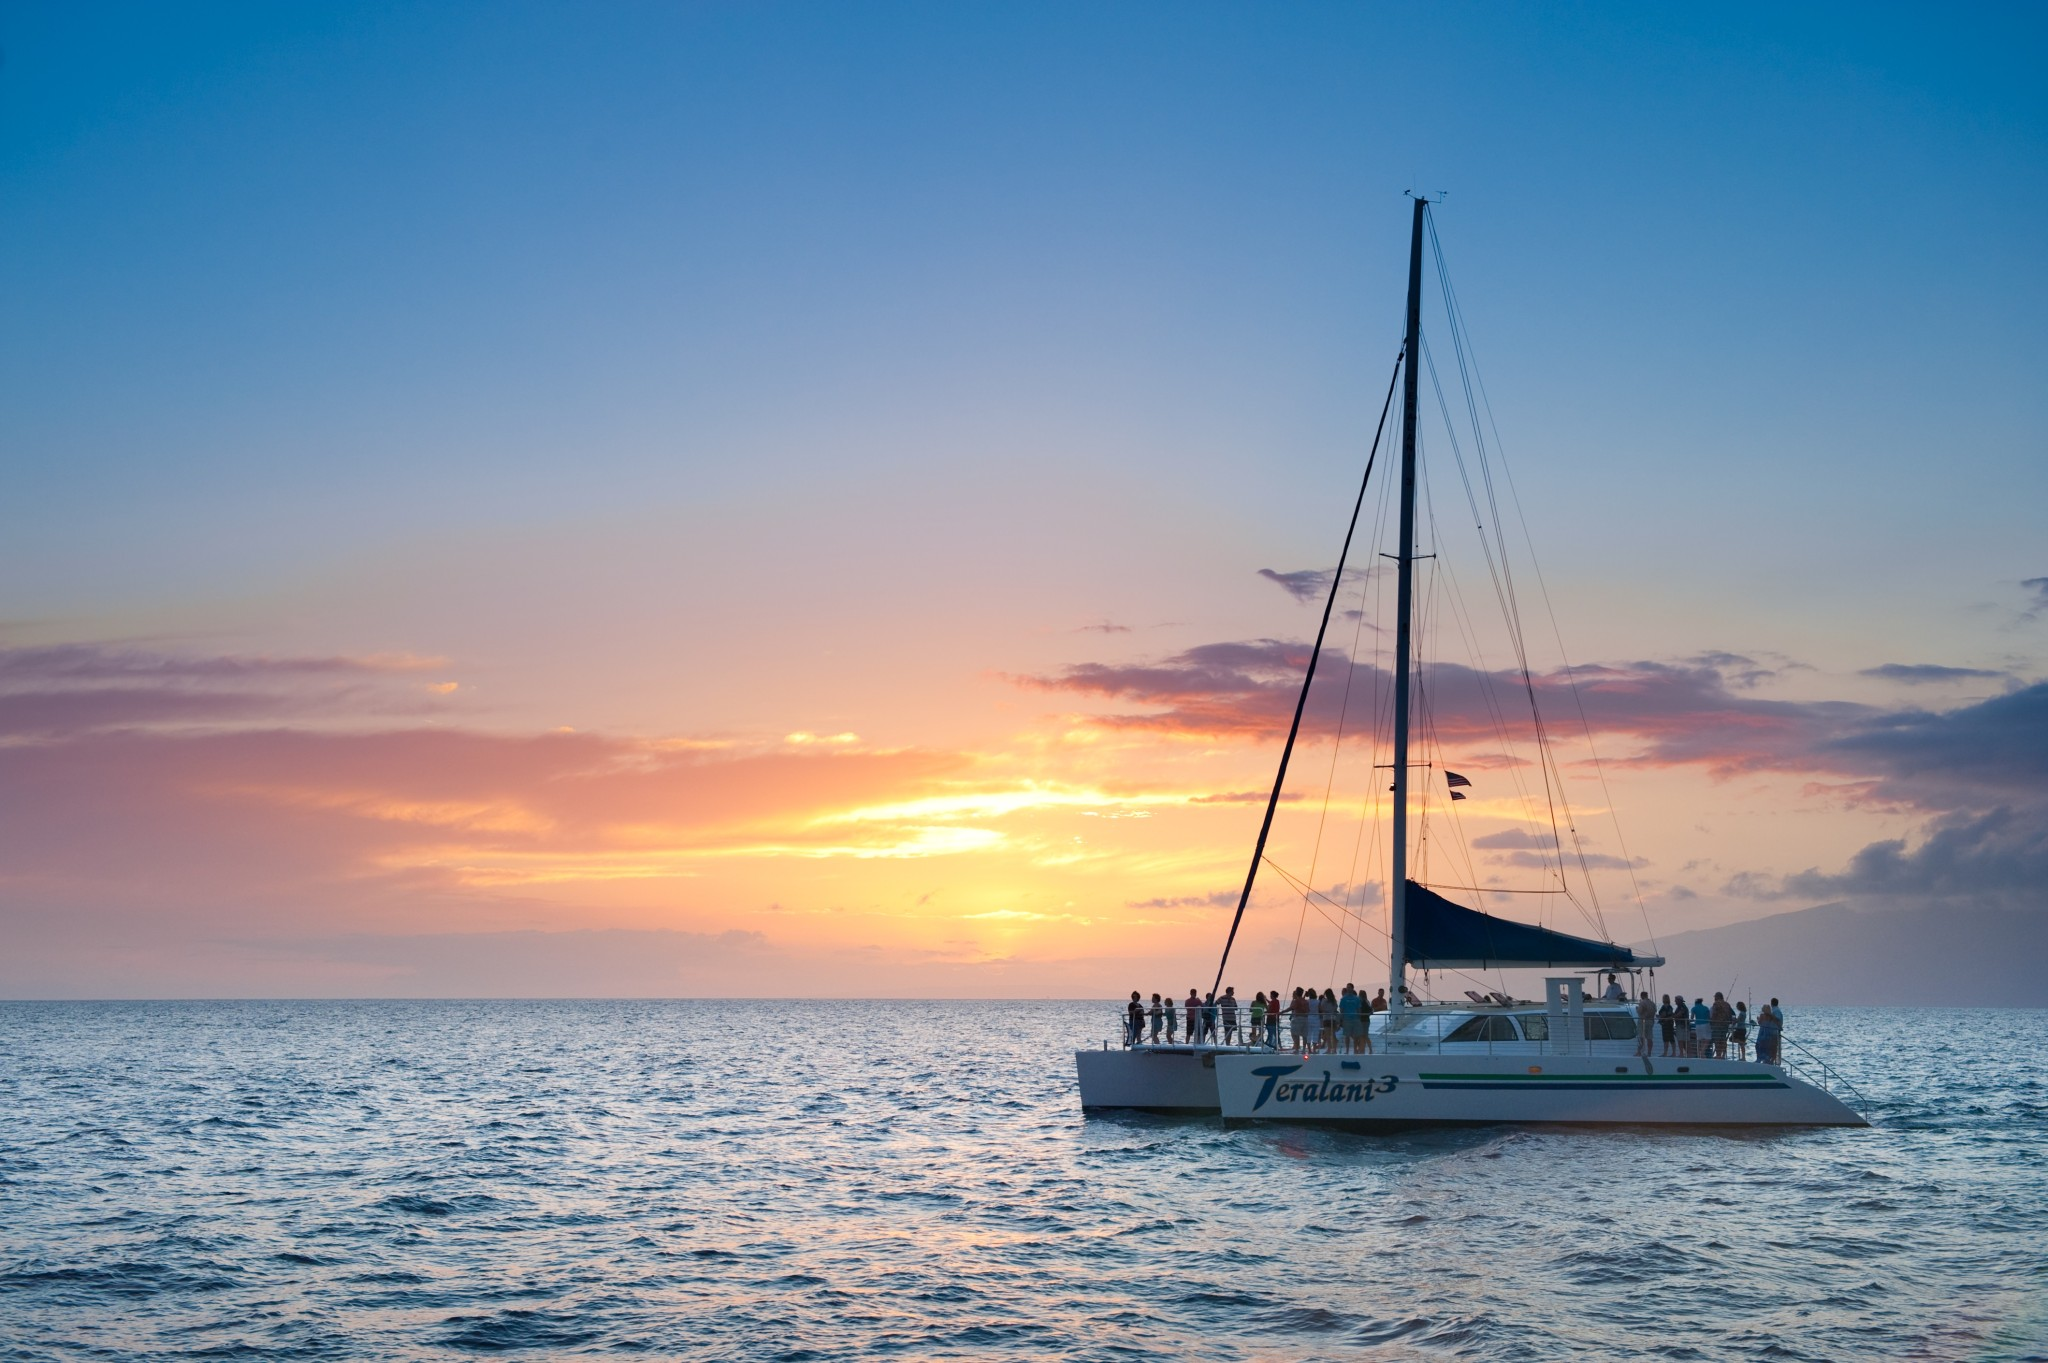 Teralani Sailing Adventures_sunset